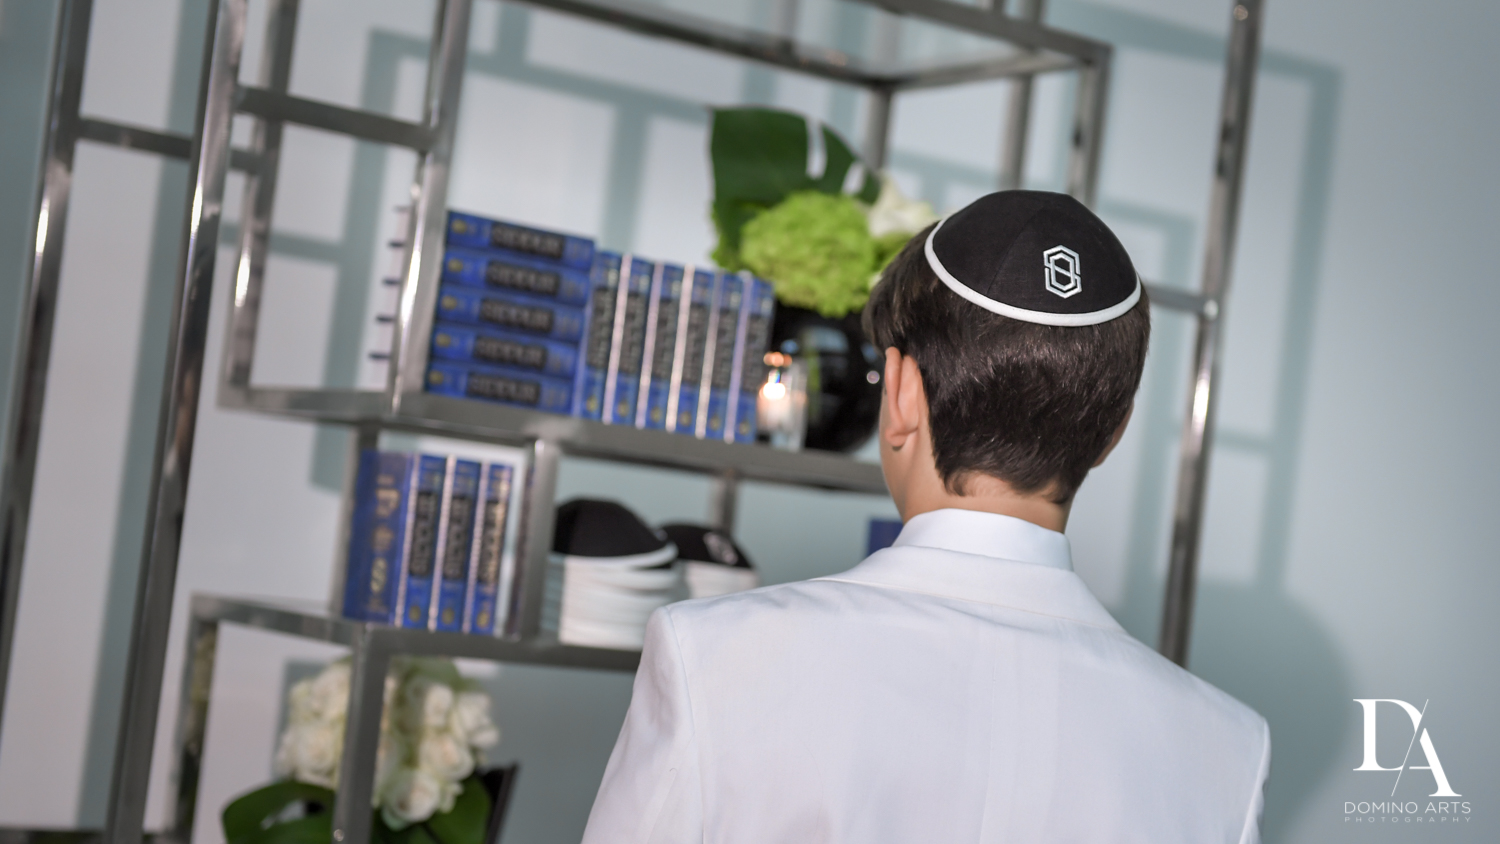 personalized kippah at Monochrome Bar Mitzvah Ceremony at Aventura Chabad by Domino Arts Photography